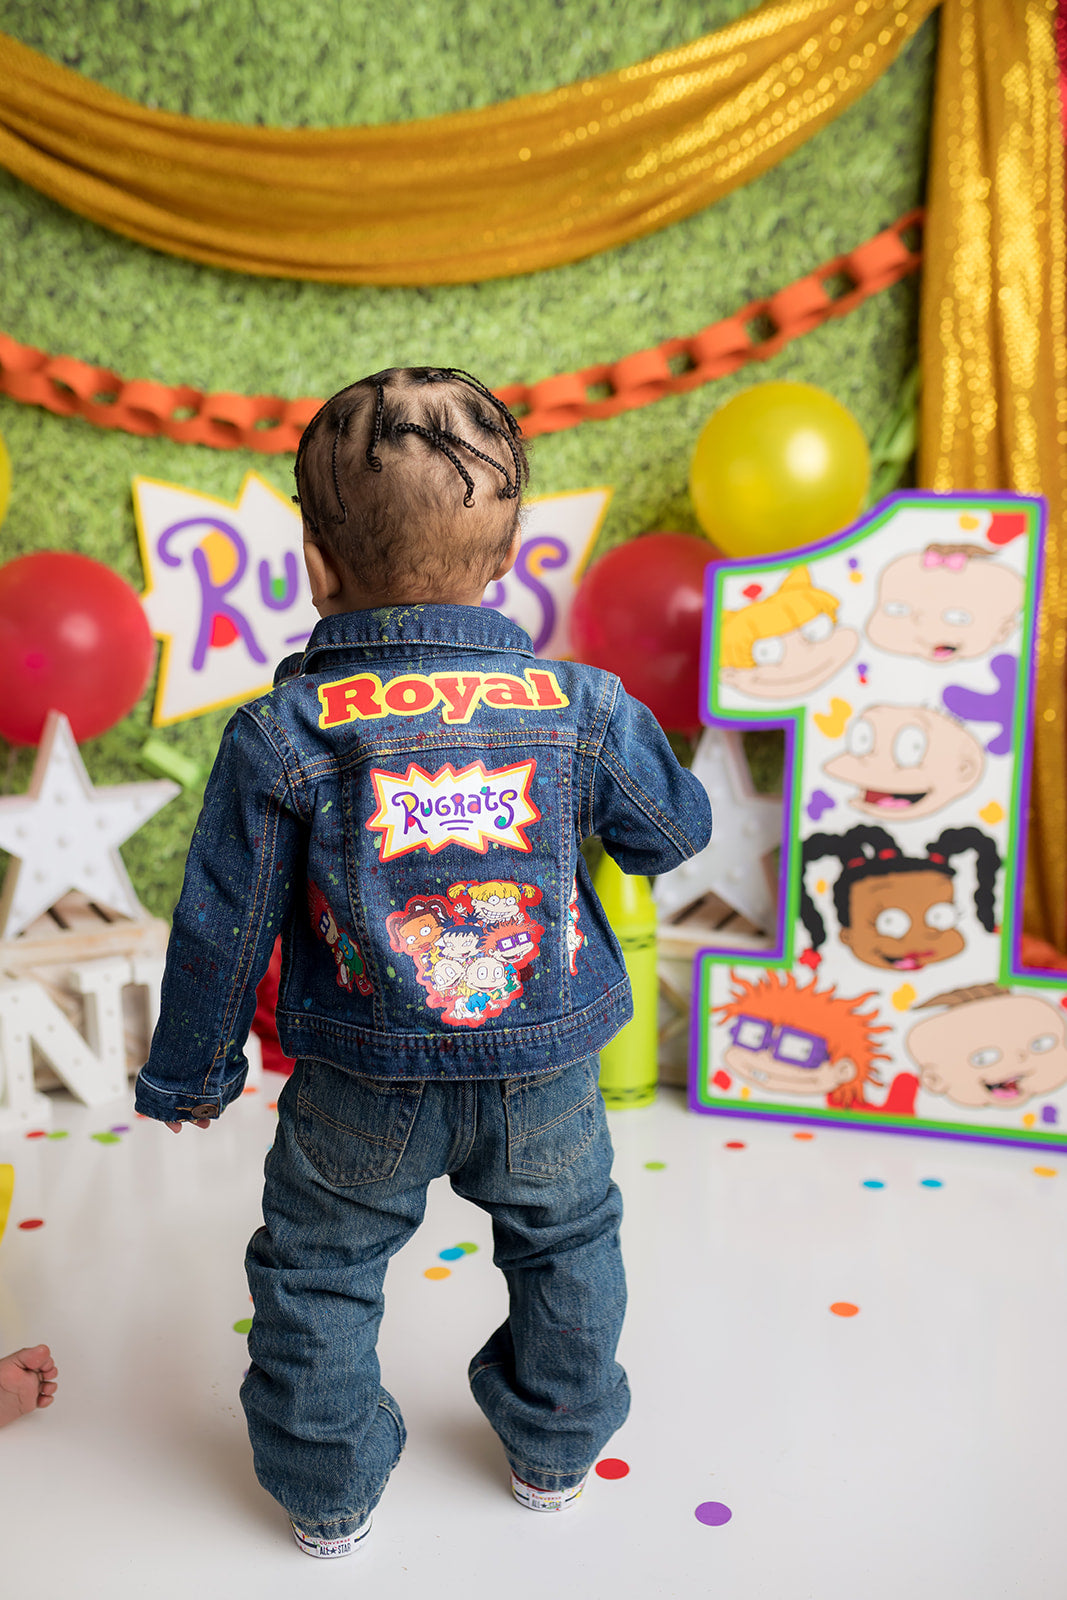 Rugrats Denim Set-Boys Rugrats denim set-Rugrats Birthday outfit-Rugrats boys outfit